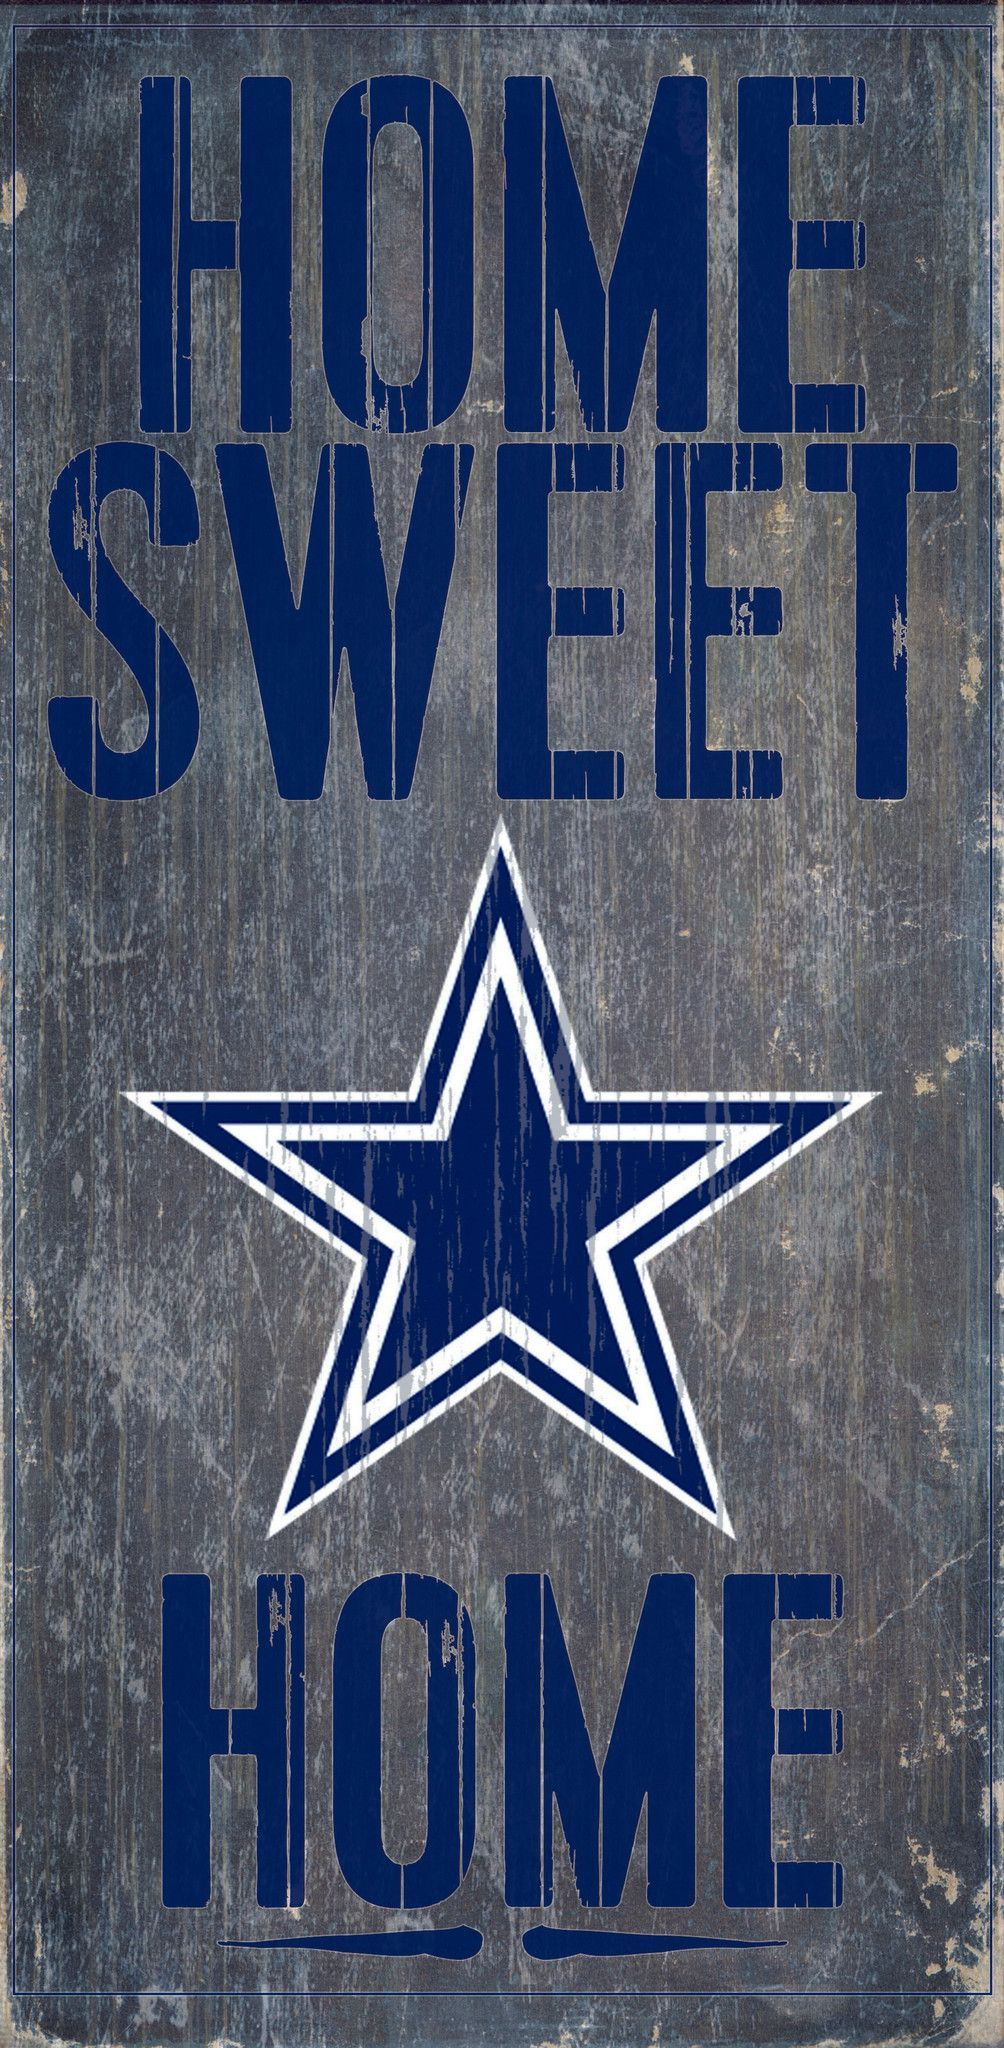 Primitive stencil home sweet home 12x12 for painting signs crafts - Officially Licensed Dallas Football Home Sweet Home Sign